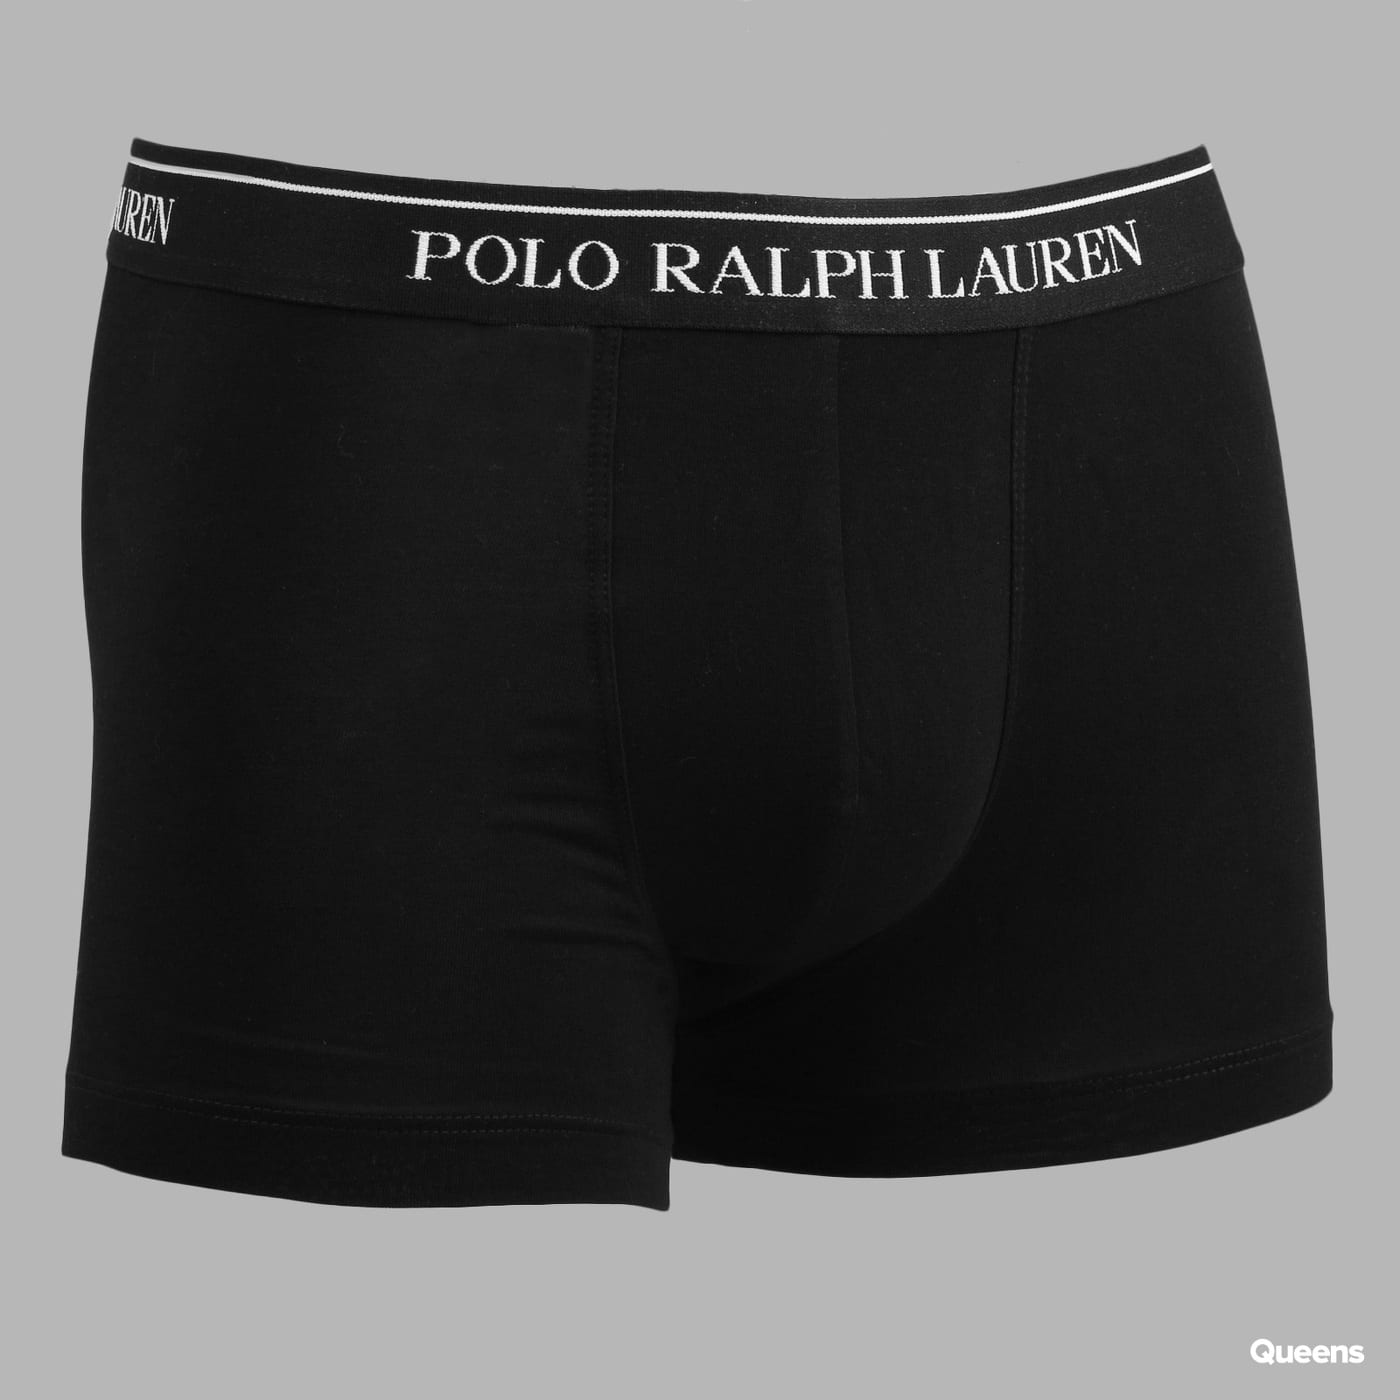 Polo Ralph Lauren 3 Pack Pouch Trunks C/O black